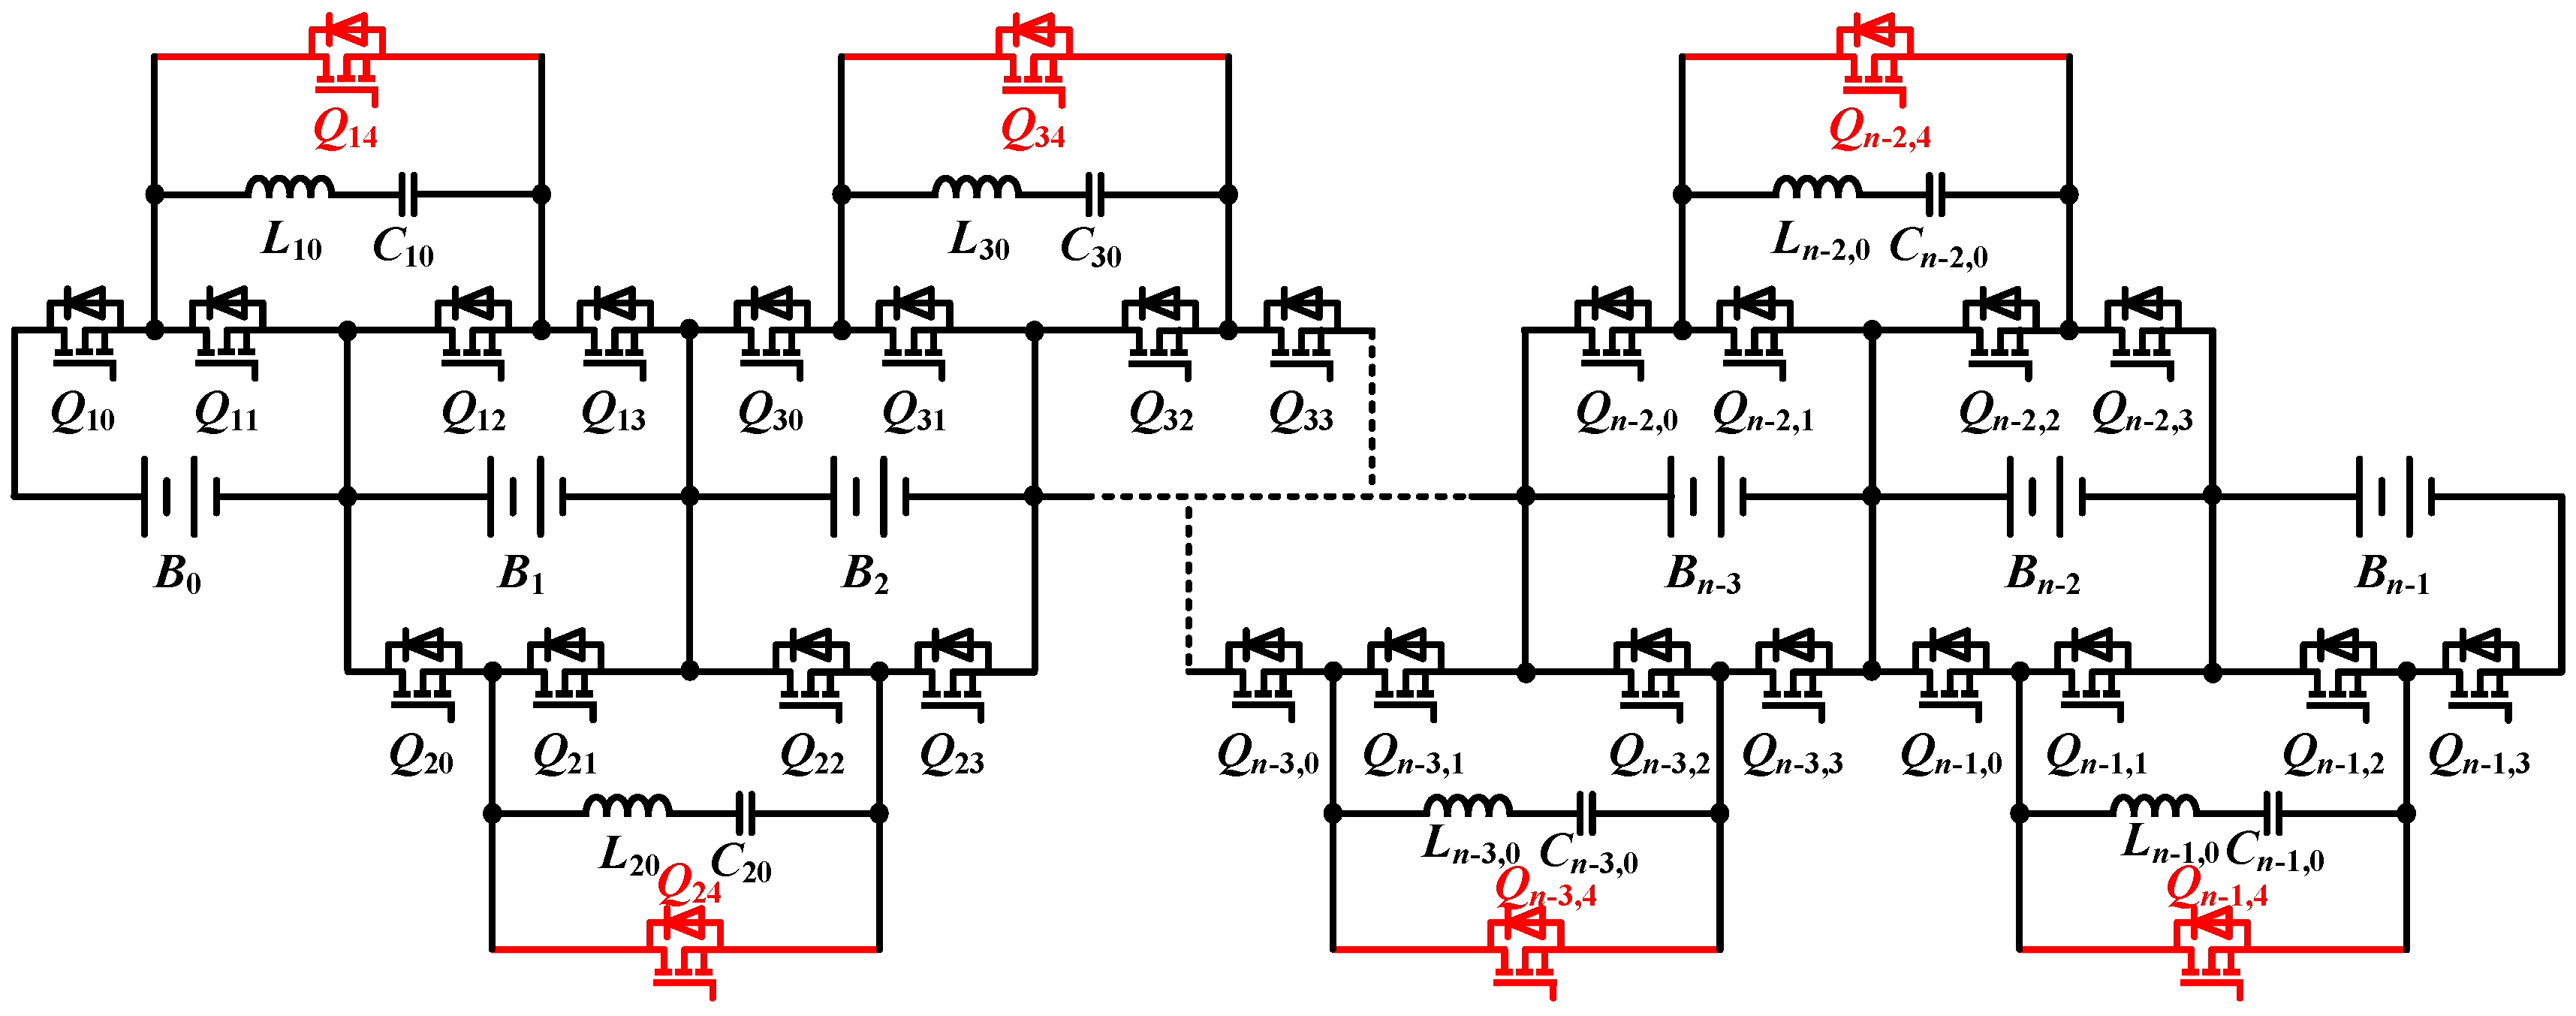 Equalizer Category Electronic Circuit Diagram Block Features The Max98400 Class D Audio Amplifier Energies 10 00206 G002 Figure 2 Schematic